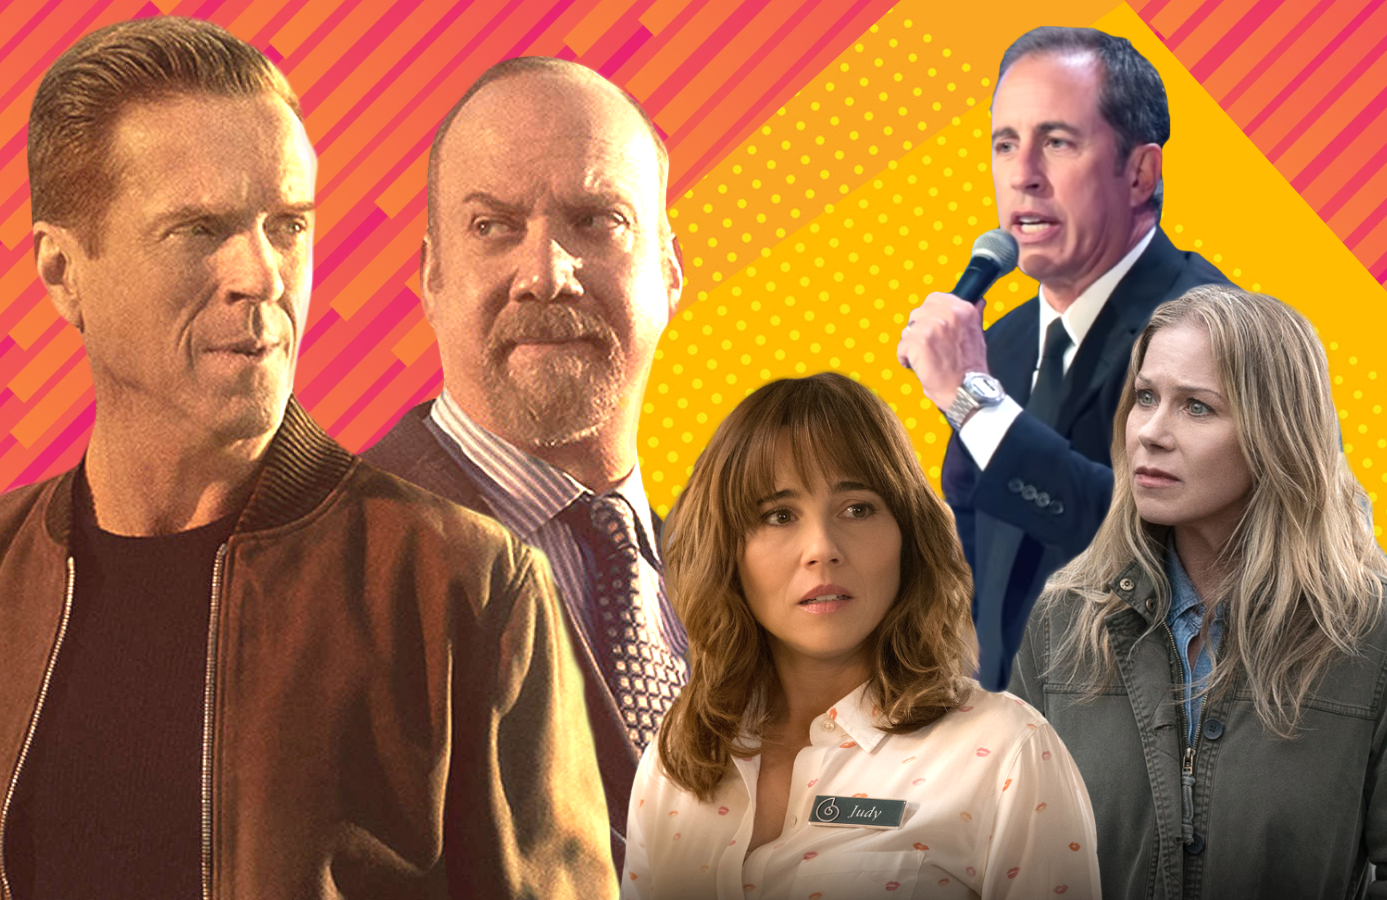 Billions, Dead to Me and Jerry Seinfeld: 23 Hours to Kill. (Photos: Showtime/Netflix)